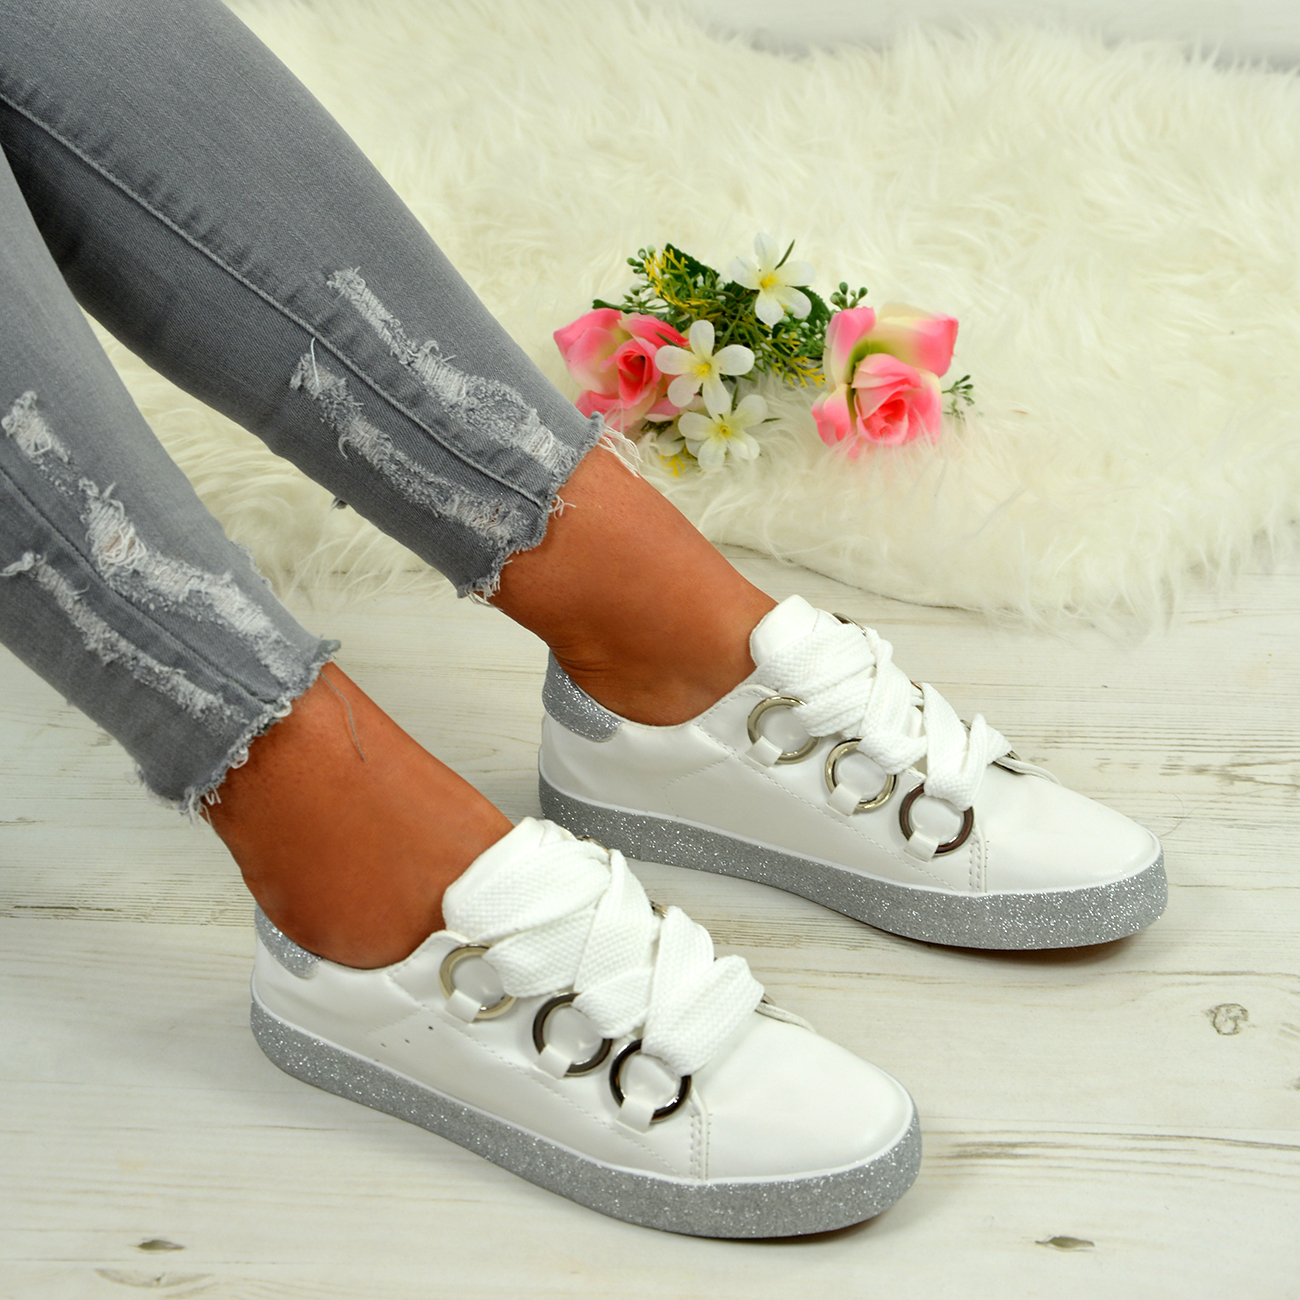 LADIES-WOMENS-GLITTER-SNEAKERS-SPARKLE-TRAINERS-LACE-UP-PLIMSOLL-PUMPS-SHOES thumbnail 28